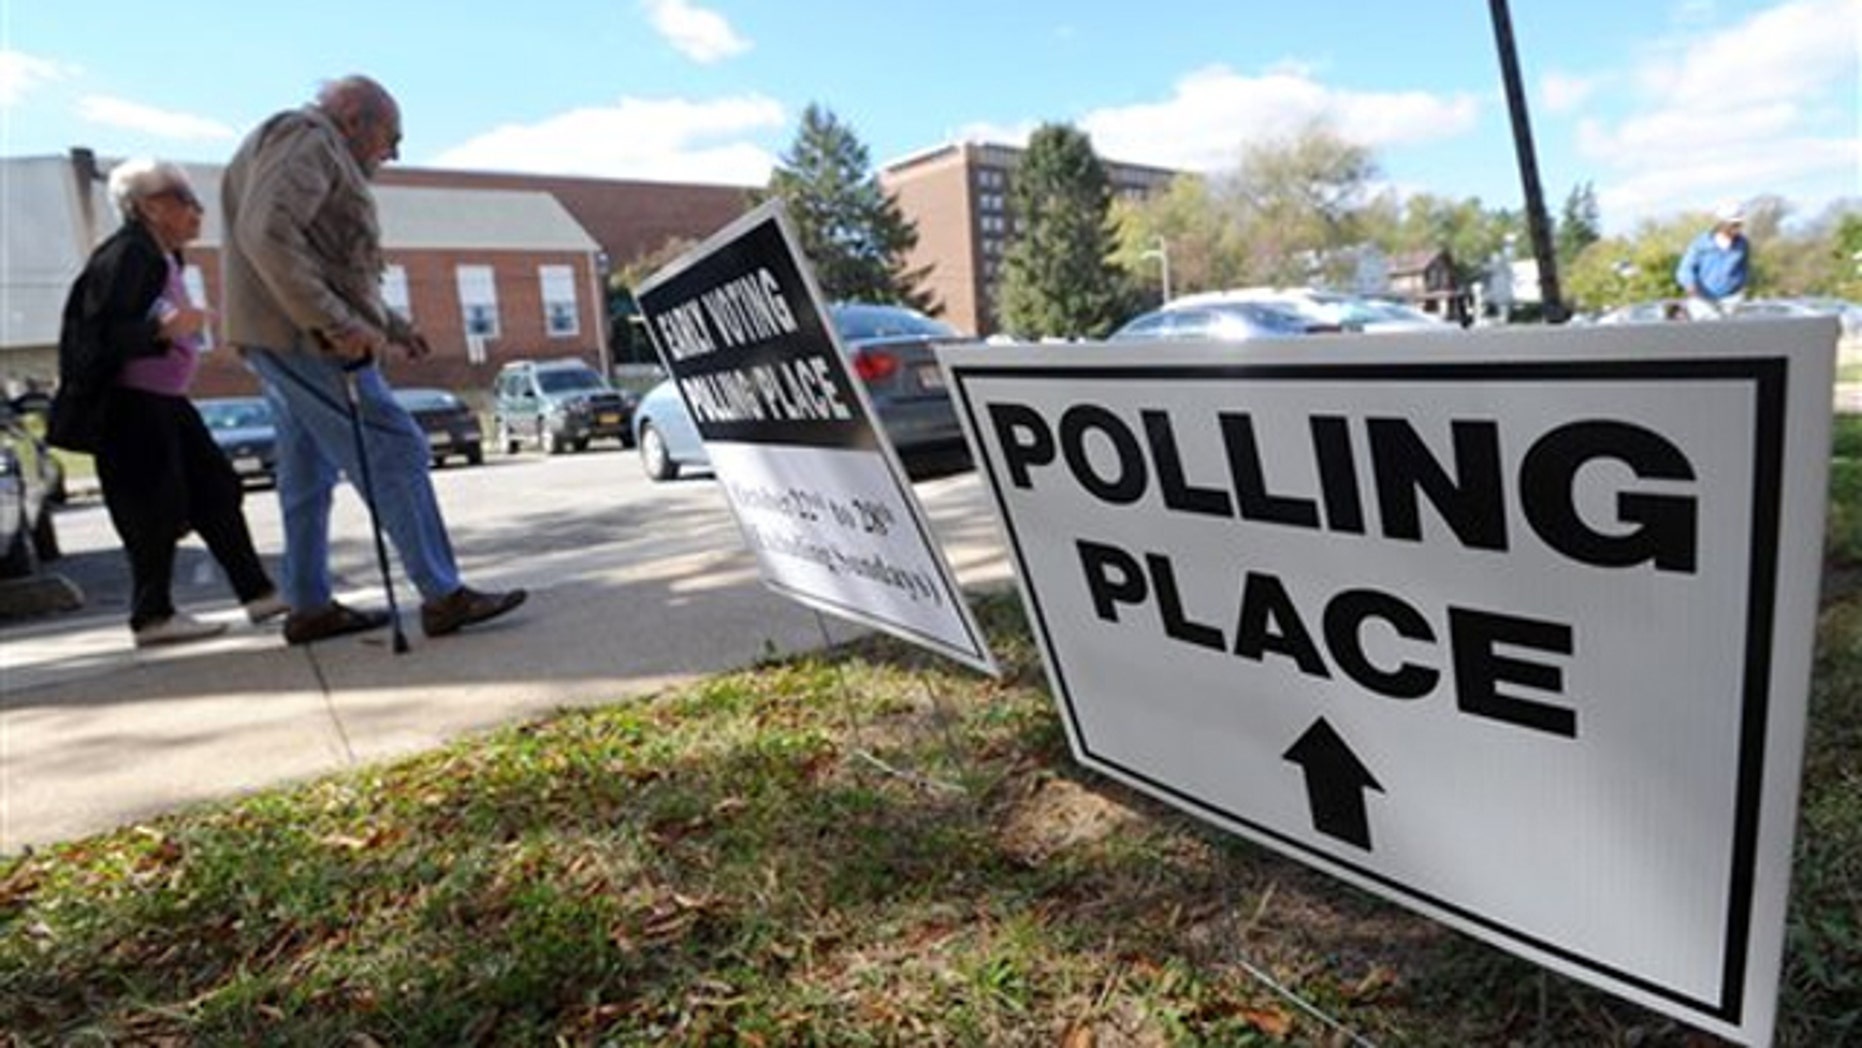 Voters arrive to cast early ballots in Maryland's general election Oct. 22 in Baltimore. (AP Photo)